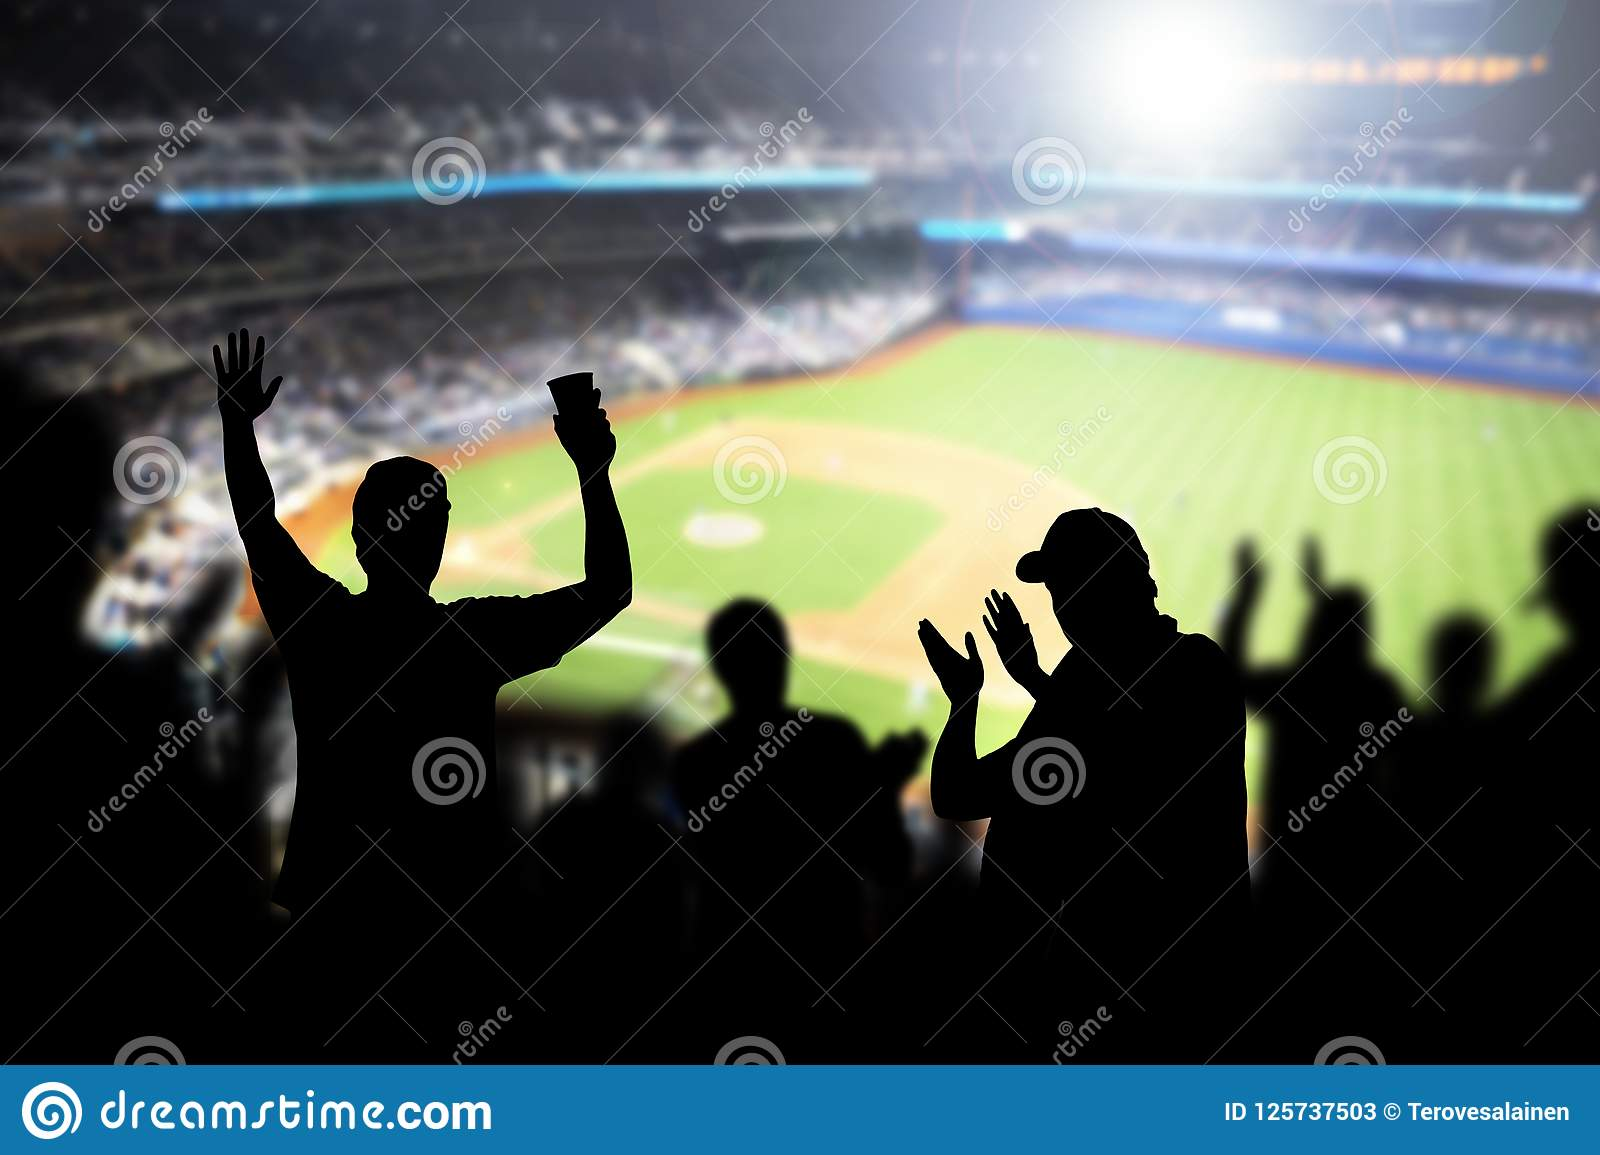 Baseball fans and crowd cheering in stadium.